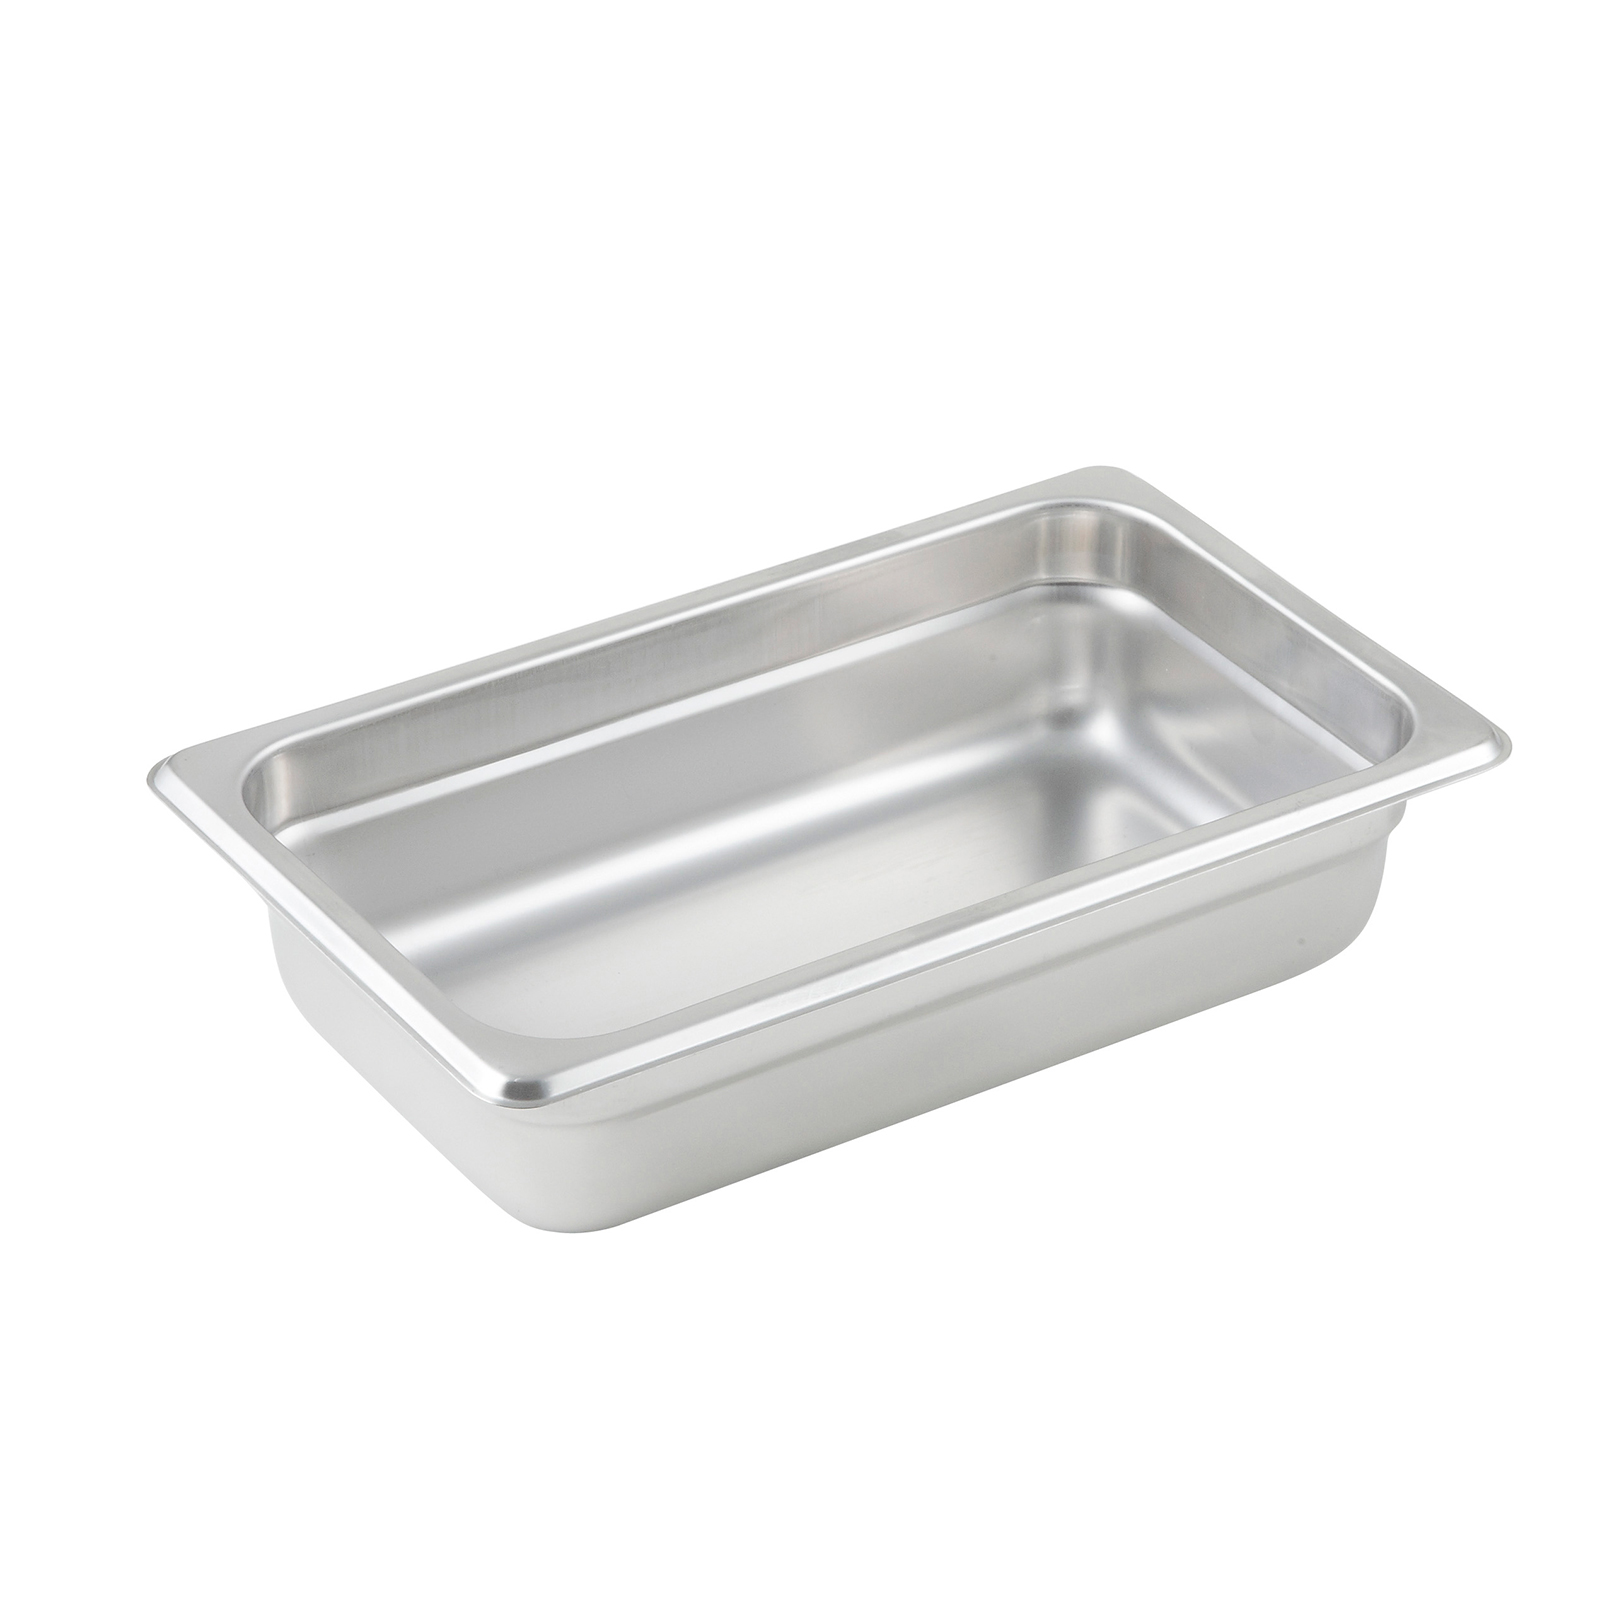 Winco SPJP-402 steam table pan, stainless steel